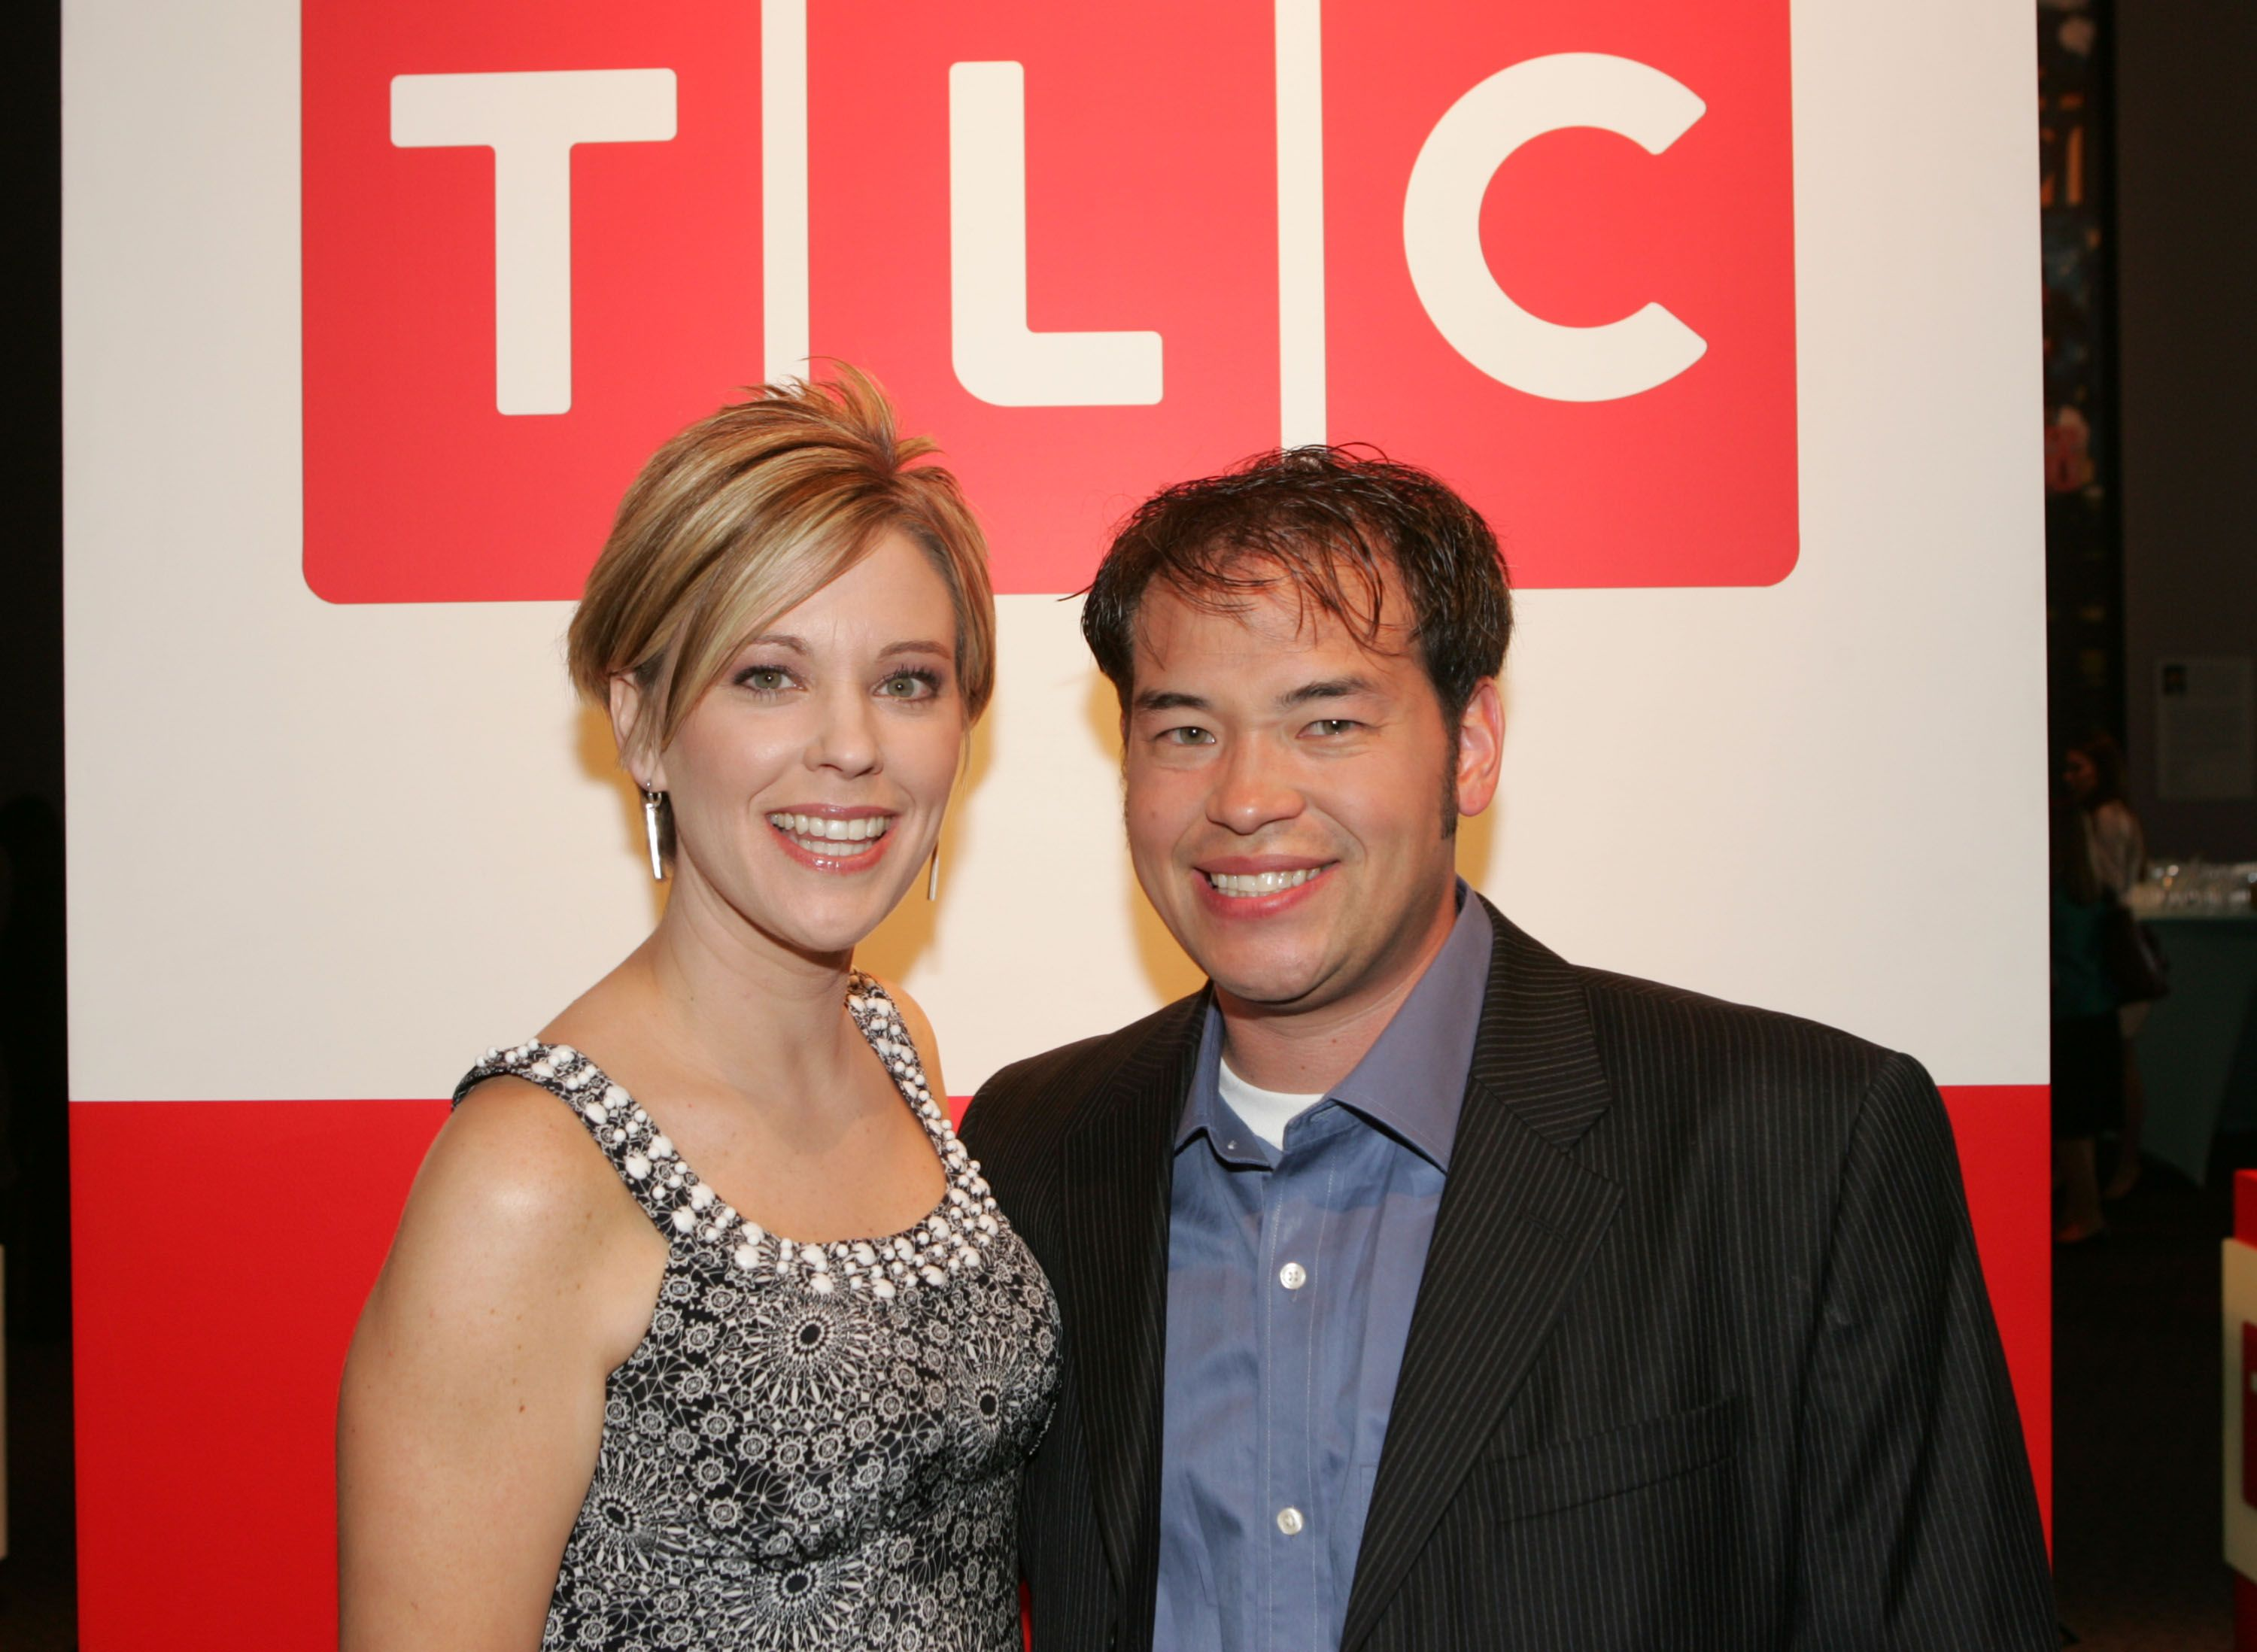 John and Kate Gosselin atthe Discovery Upfront Presentation NY - Talent Images event on April 23, 2008, in New York City | Photo: Thos Robinson/Getty Images